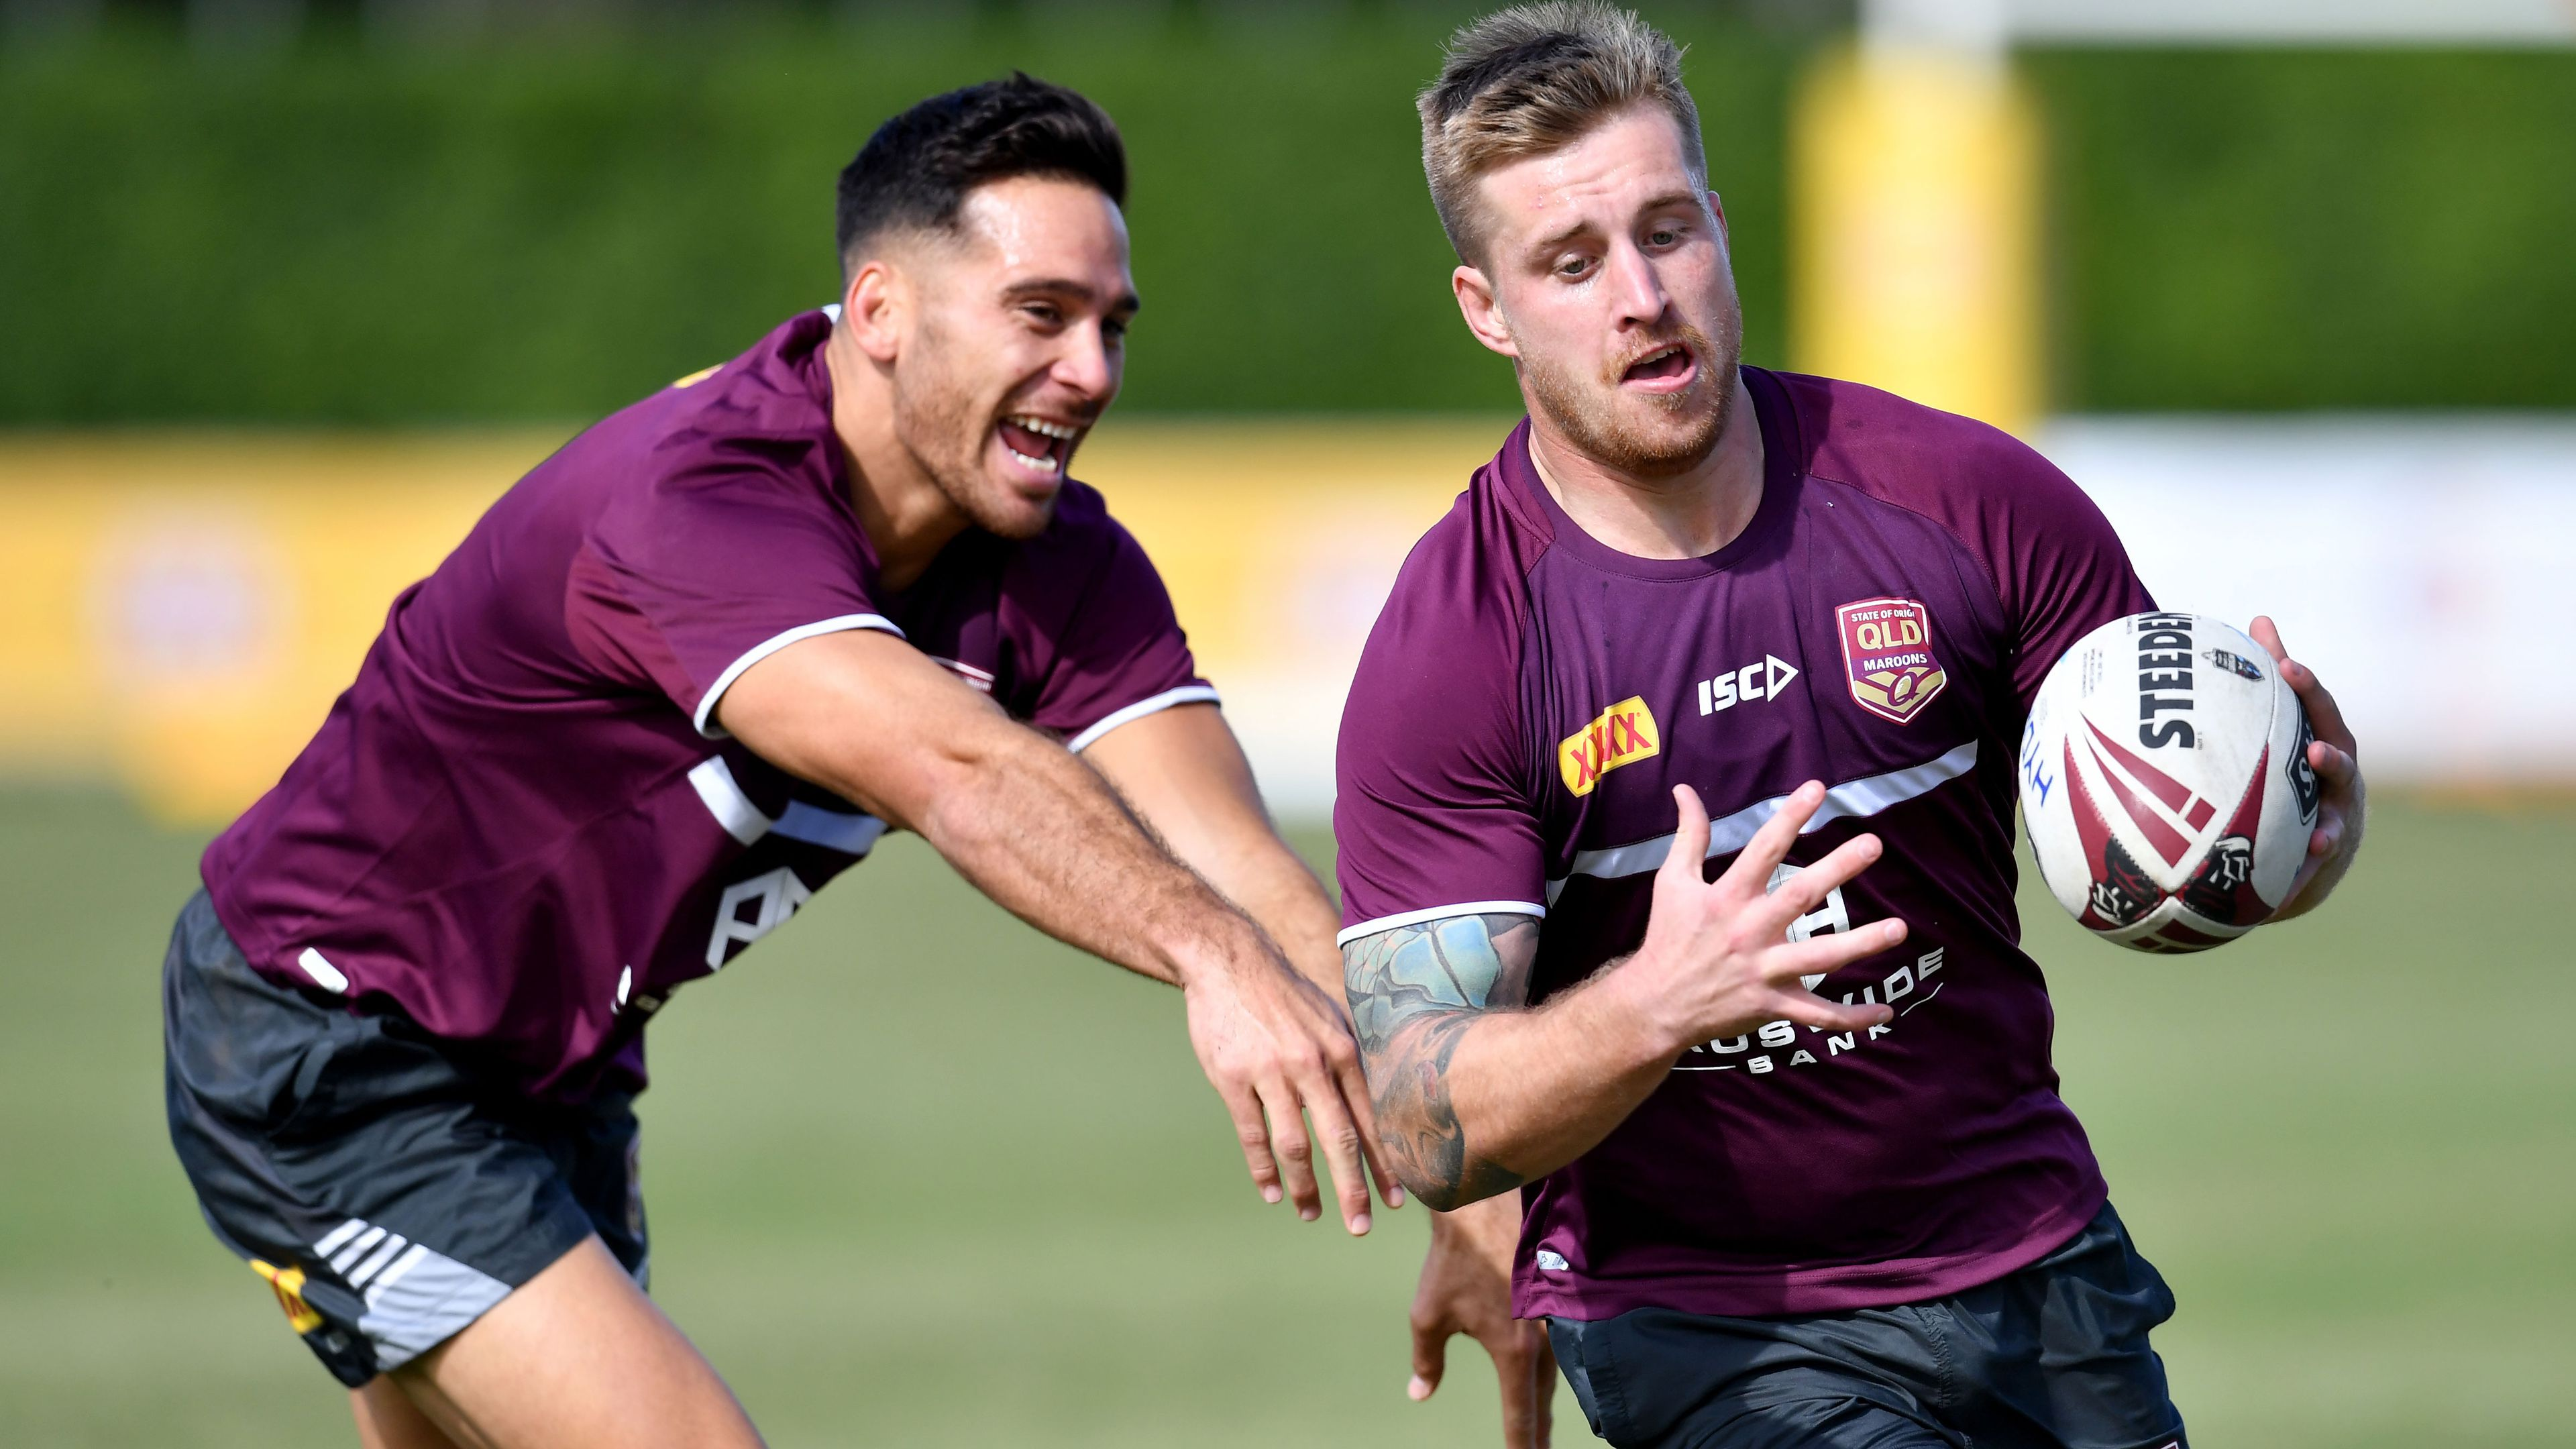 EXCLUSIVE: Maroons face 'confronting' 2020 State of Origin series, says Wally Lewis